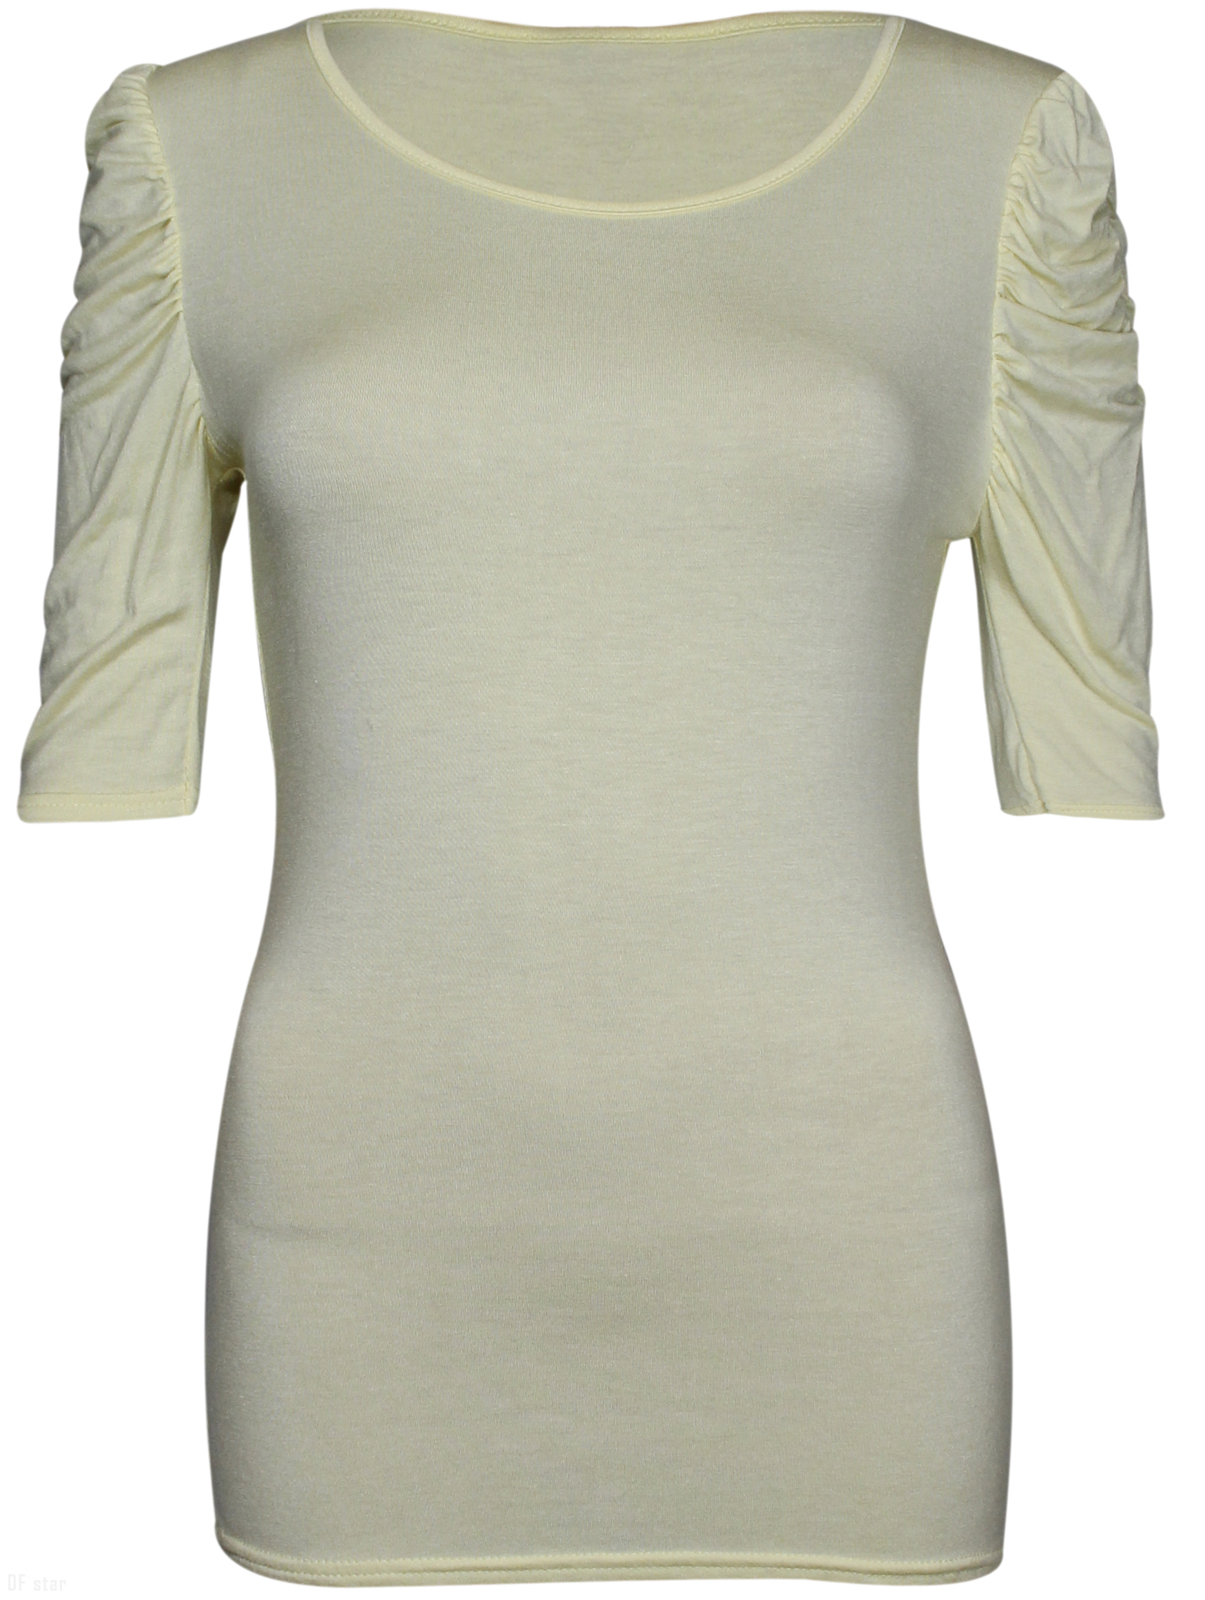 NEW-LADIES-RUCHED-SHORT-SLEEVE-WOMENS-LONG-STRETCH-TOP 縮圖 26